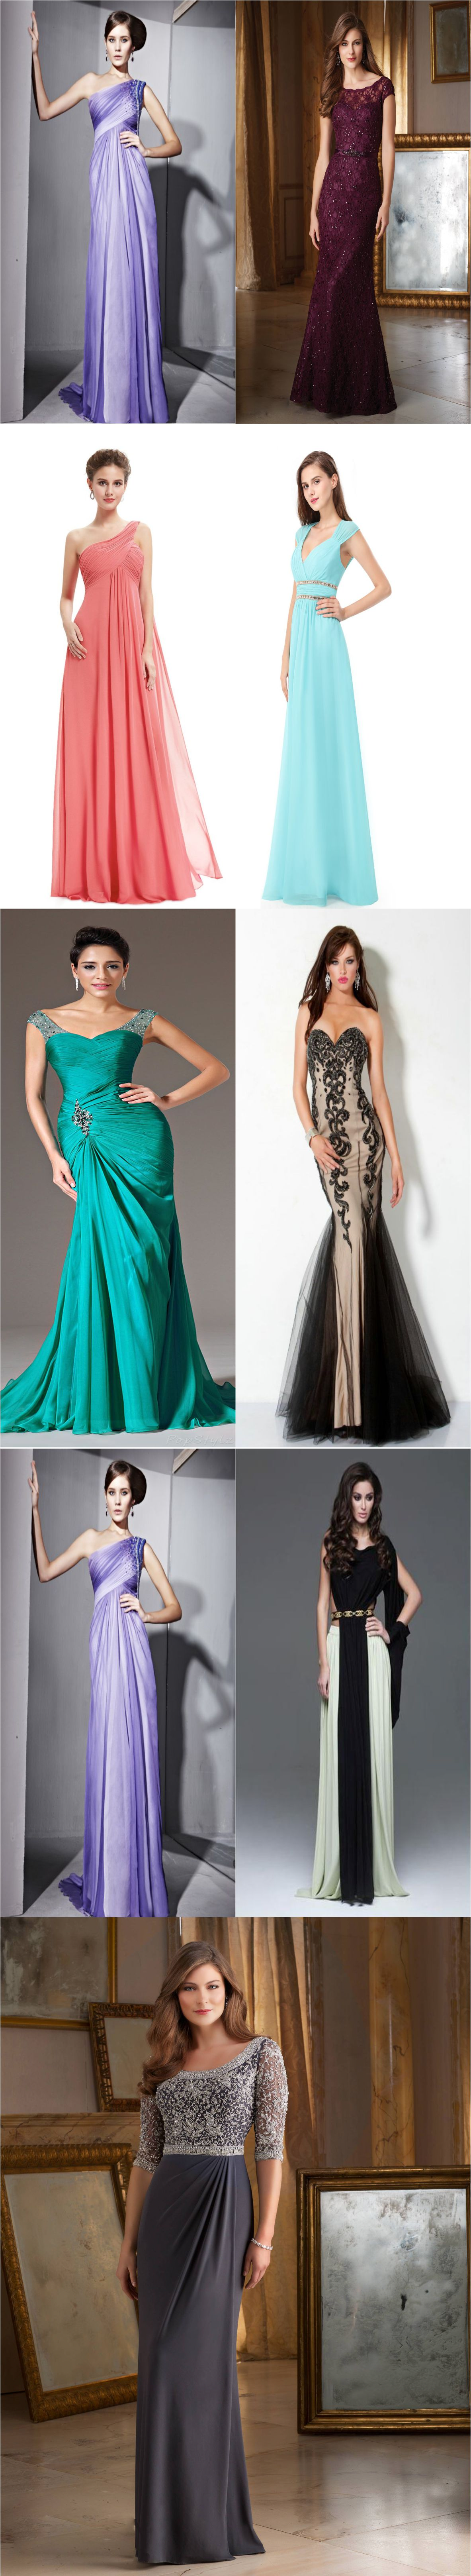 New Beautiful evening gowns